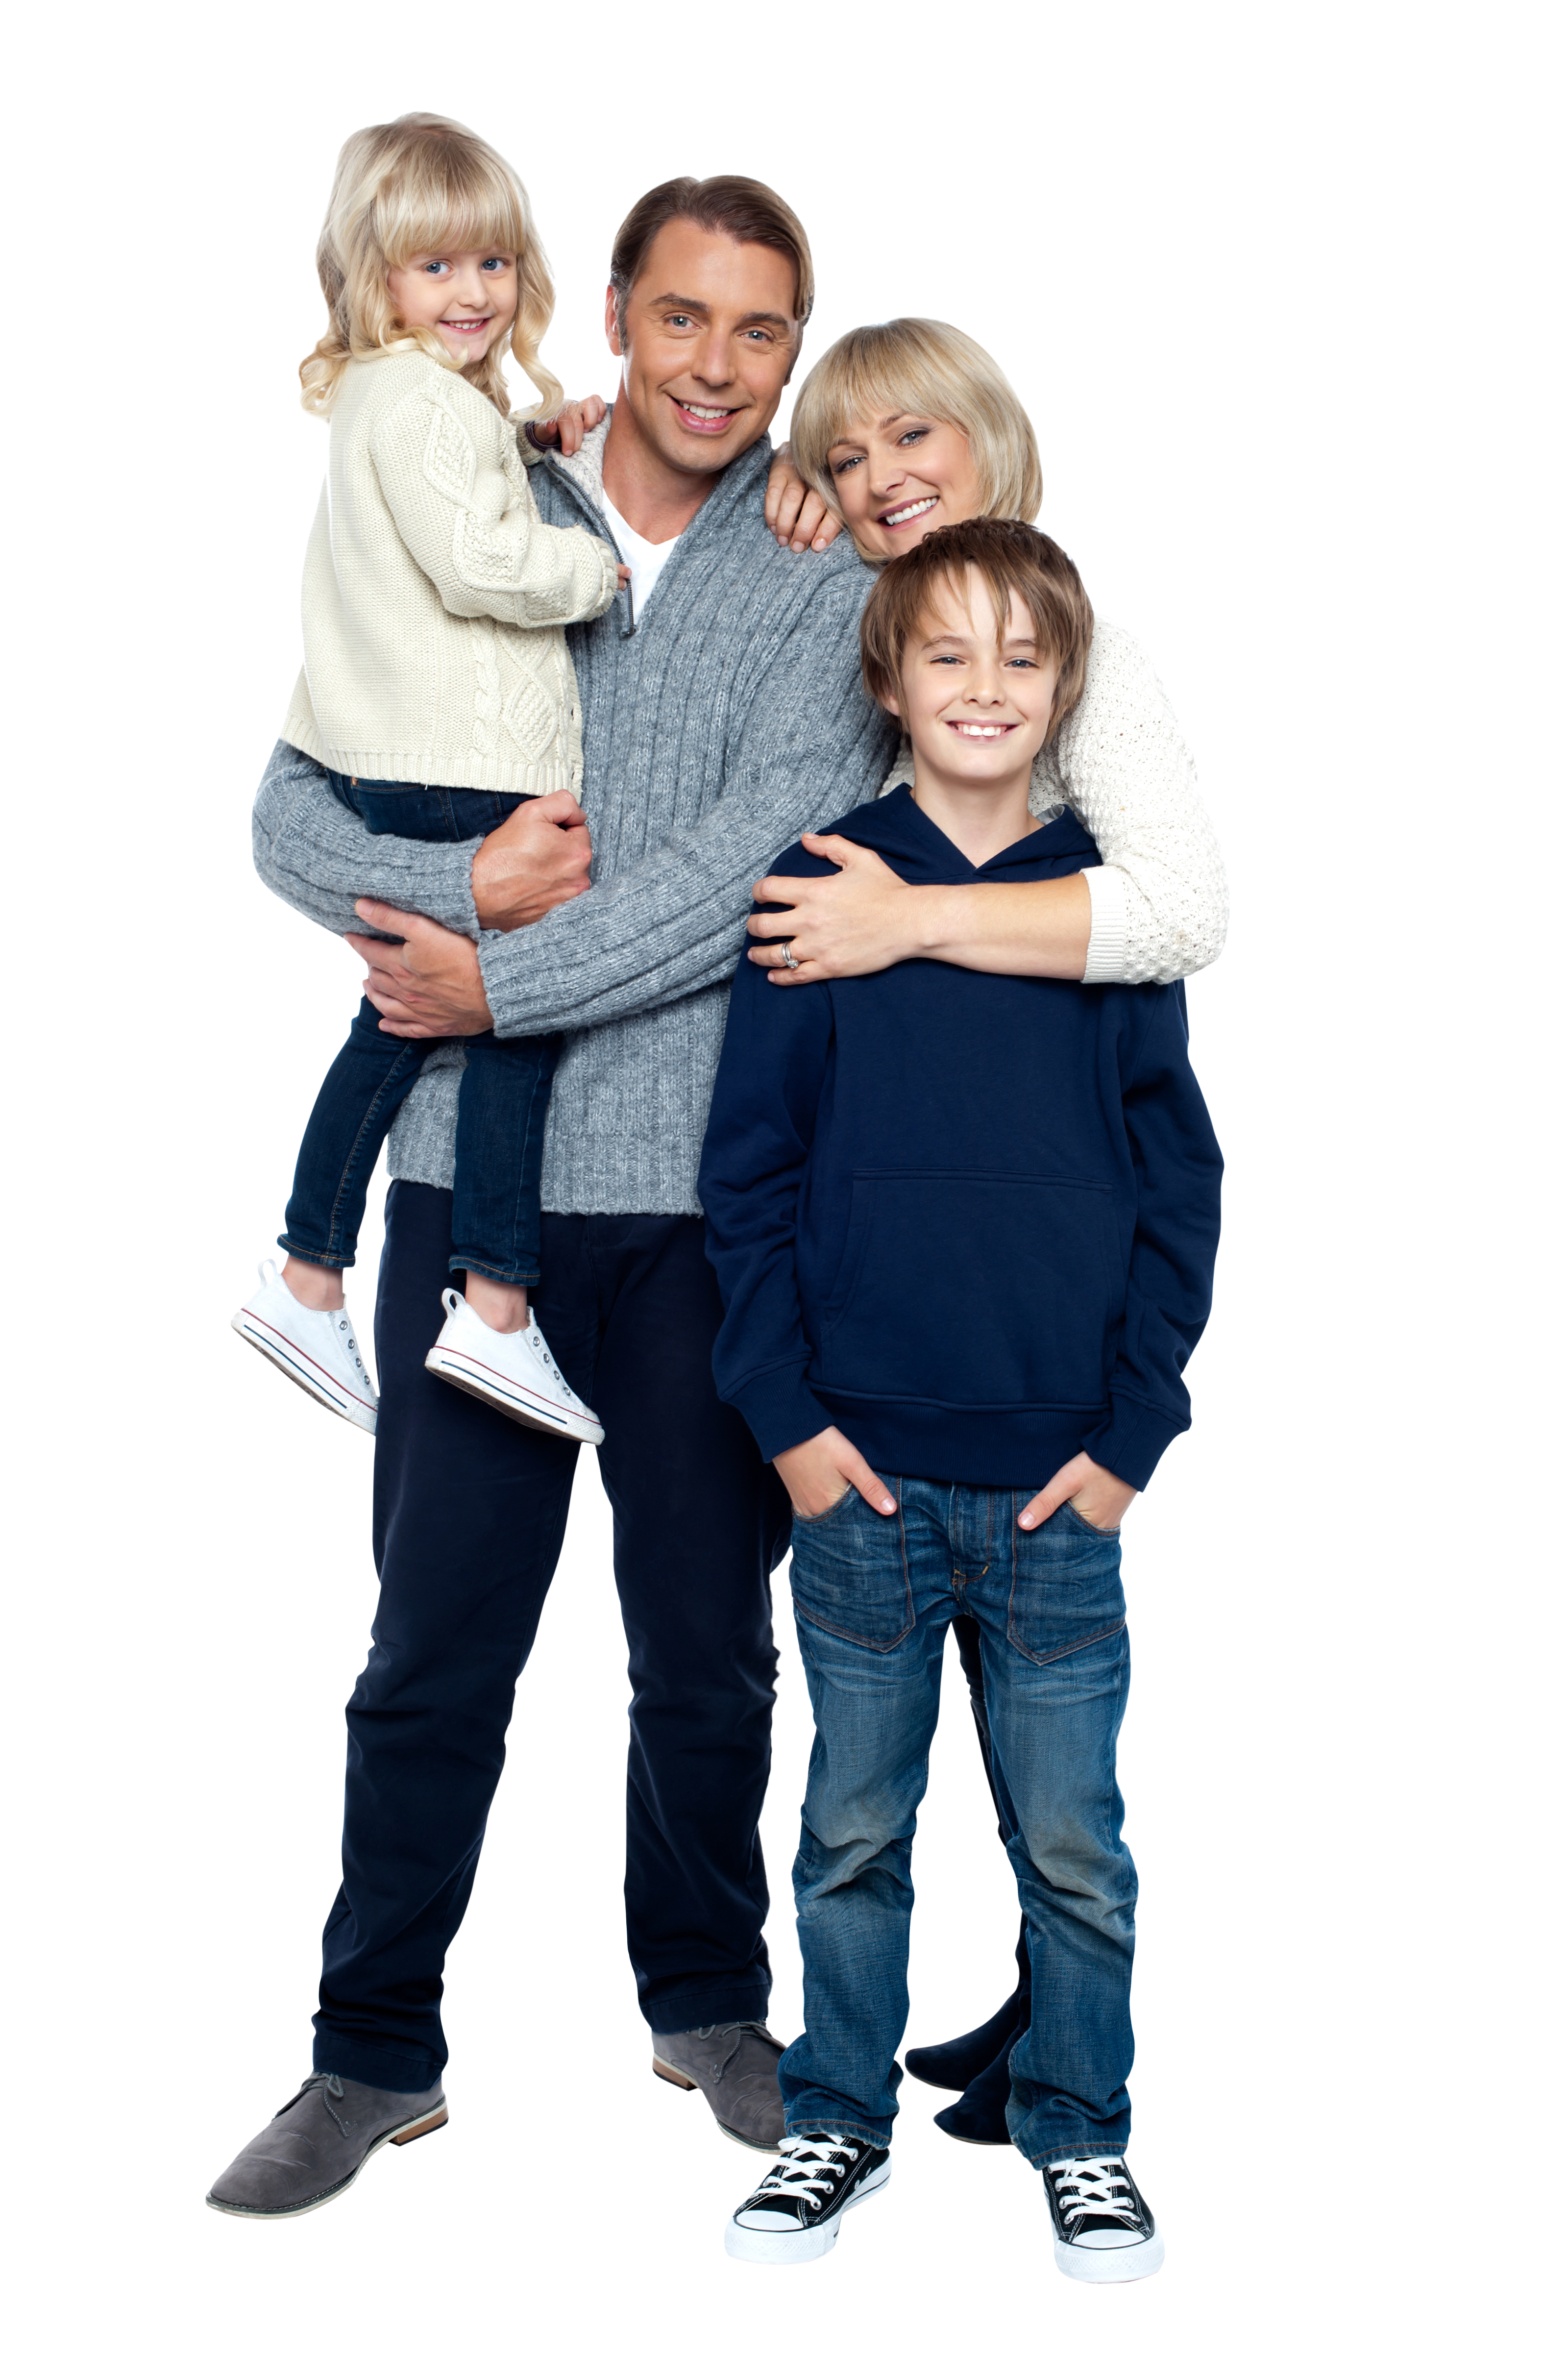 Family PNG Image - PurePNG | Free transparent CC0 PNG Image Library